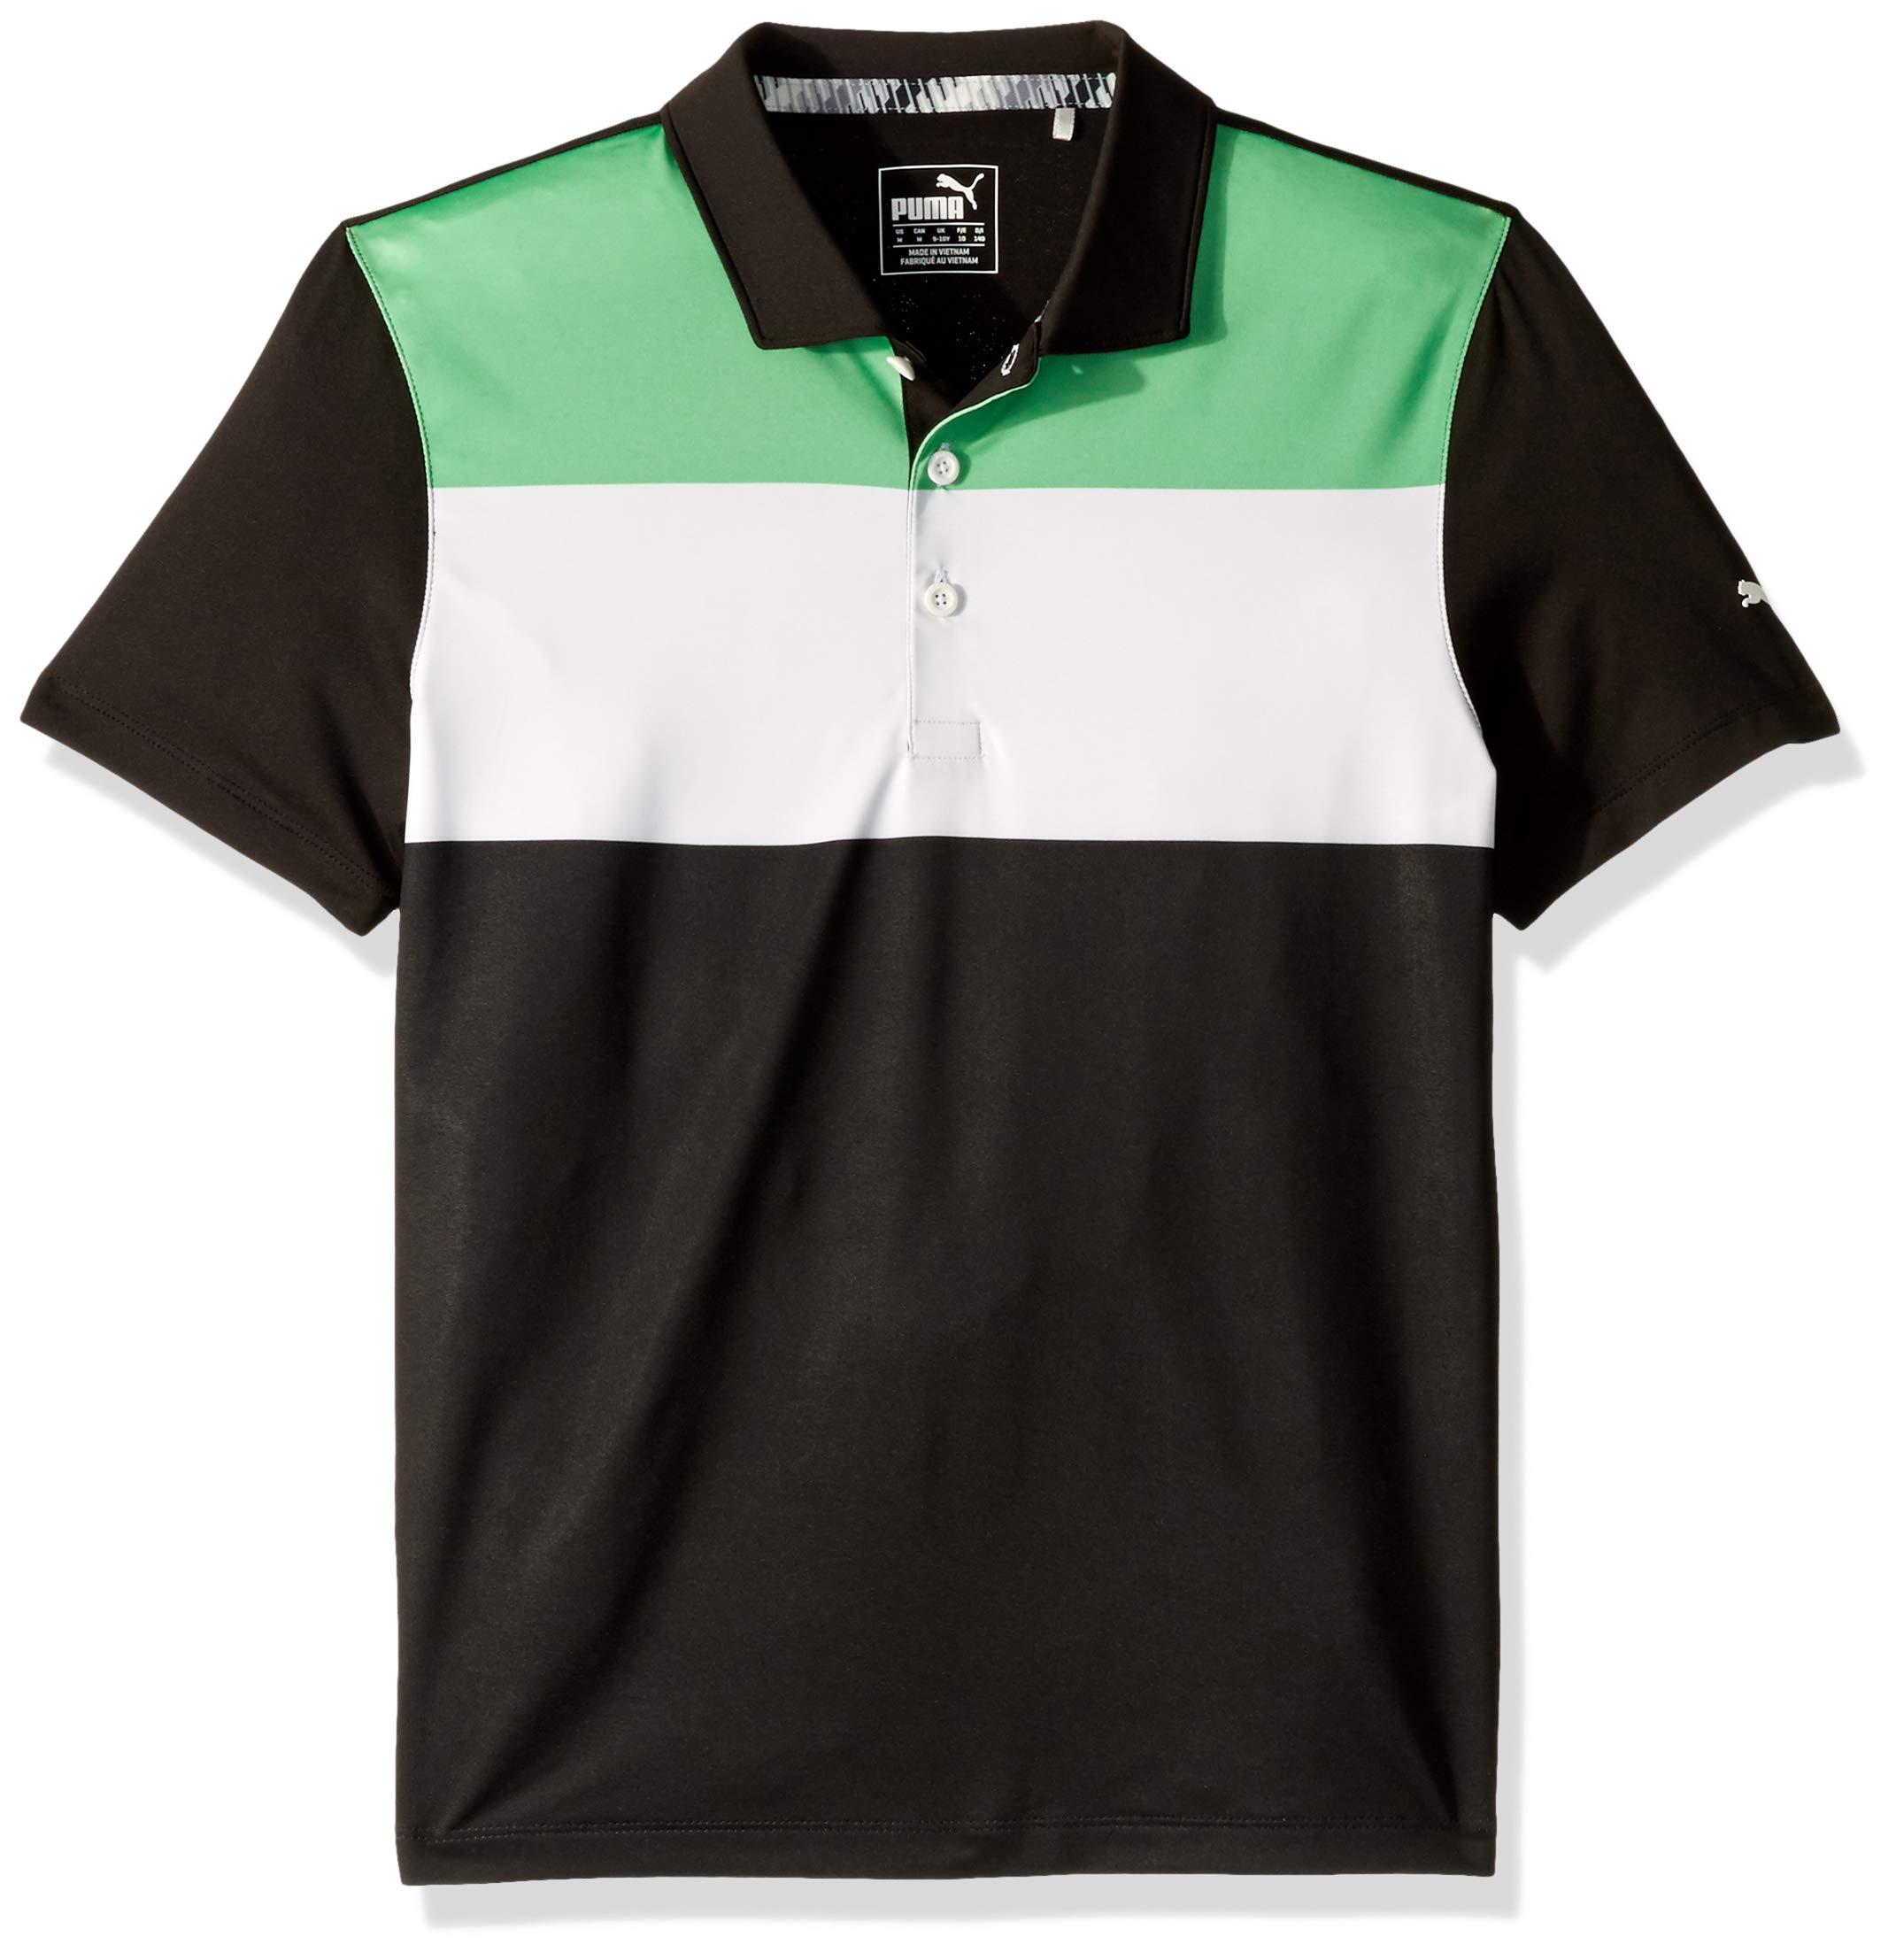 Puma Golf Boys 2019 Nineties Polo, Irish Green-Puma Black, Small by PUMA